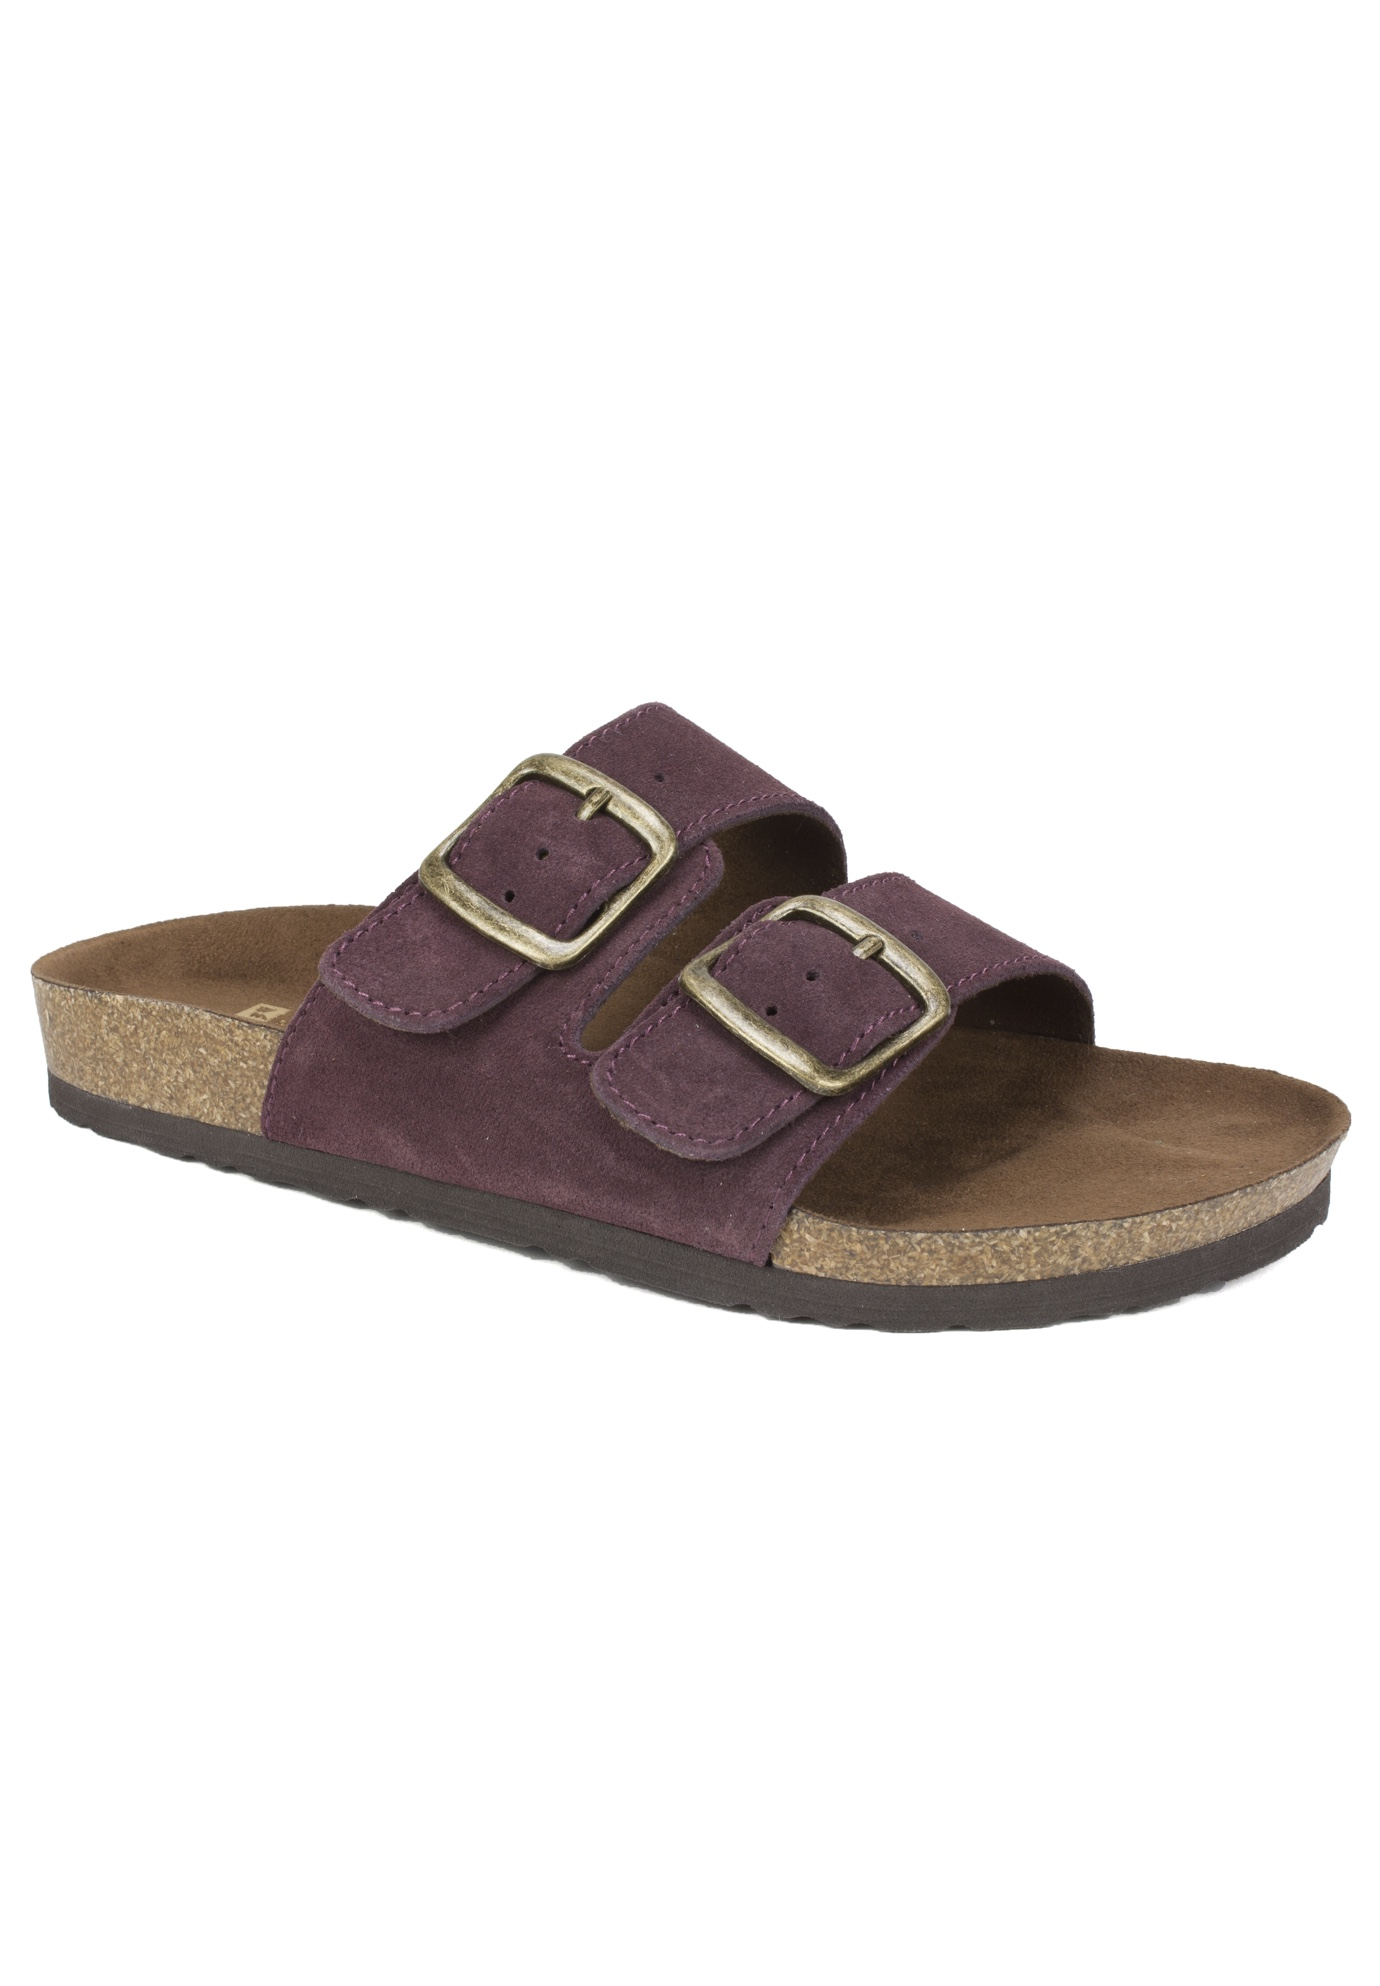 Helga Sandal by White Mountain,